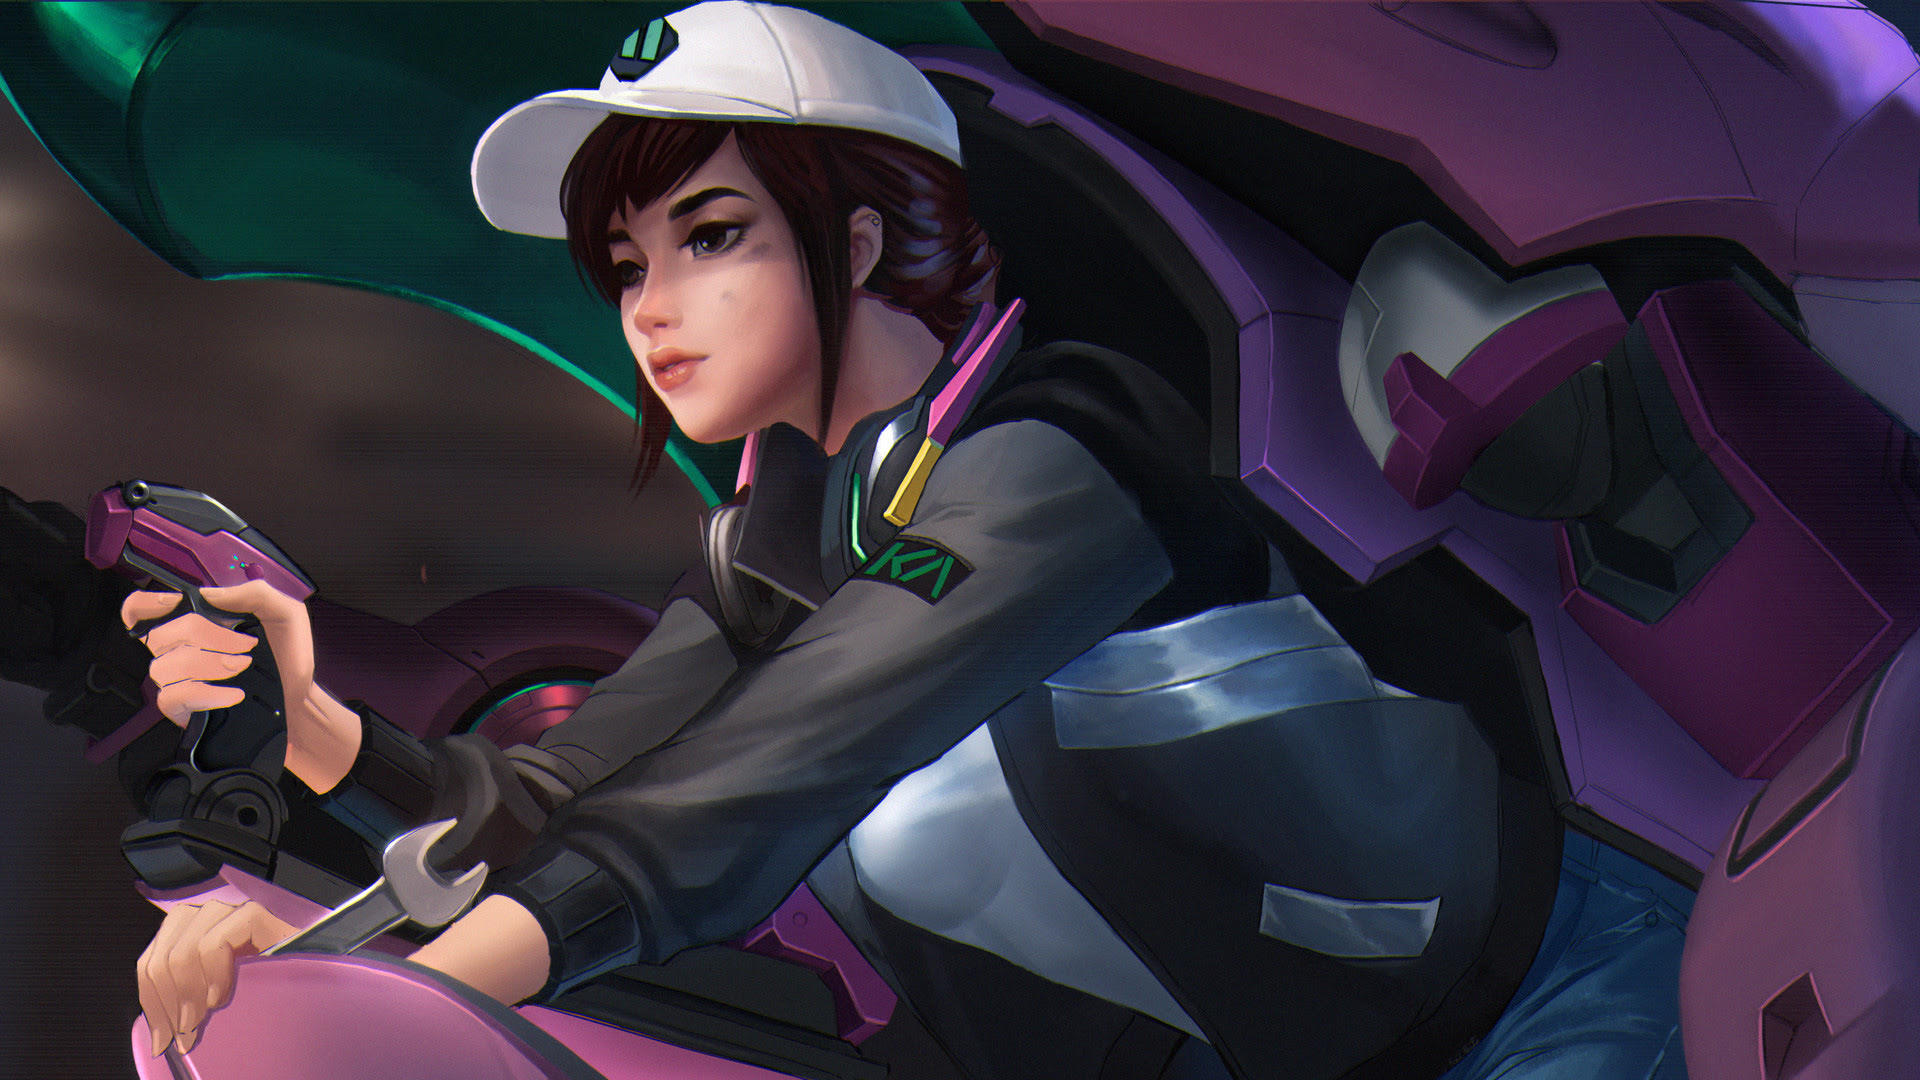 Overwatch Dva Artwork Hd Hd Games 4k Wallpapers Images